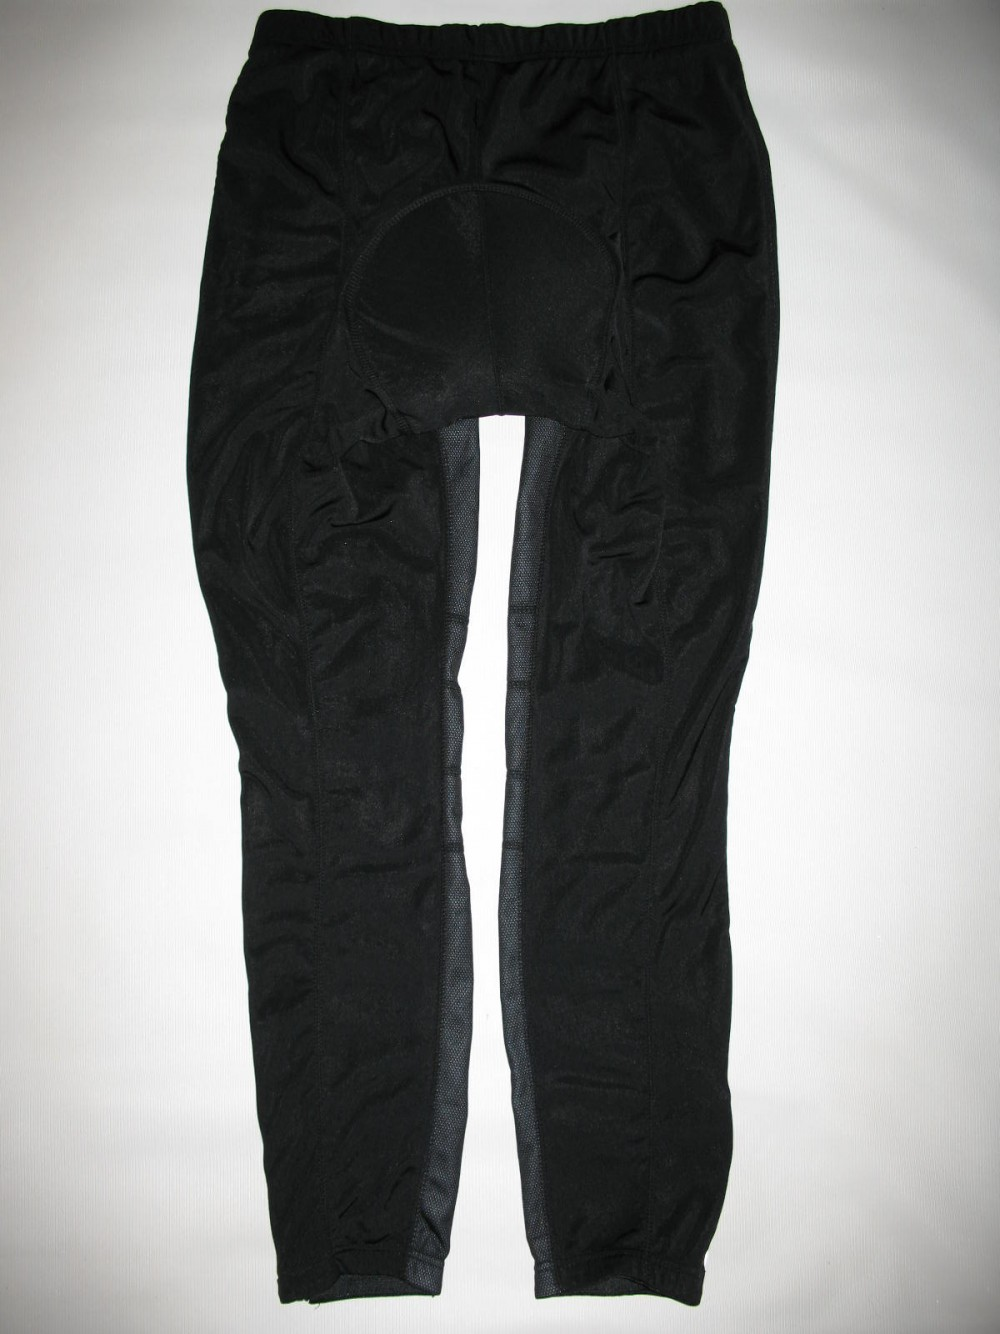 Велобрюки CRANE windstopper cycling pants (размер L) - 2